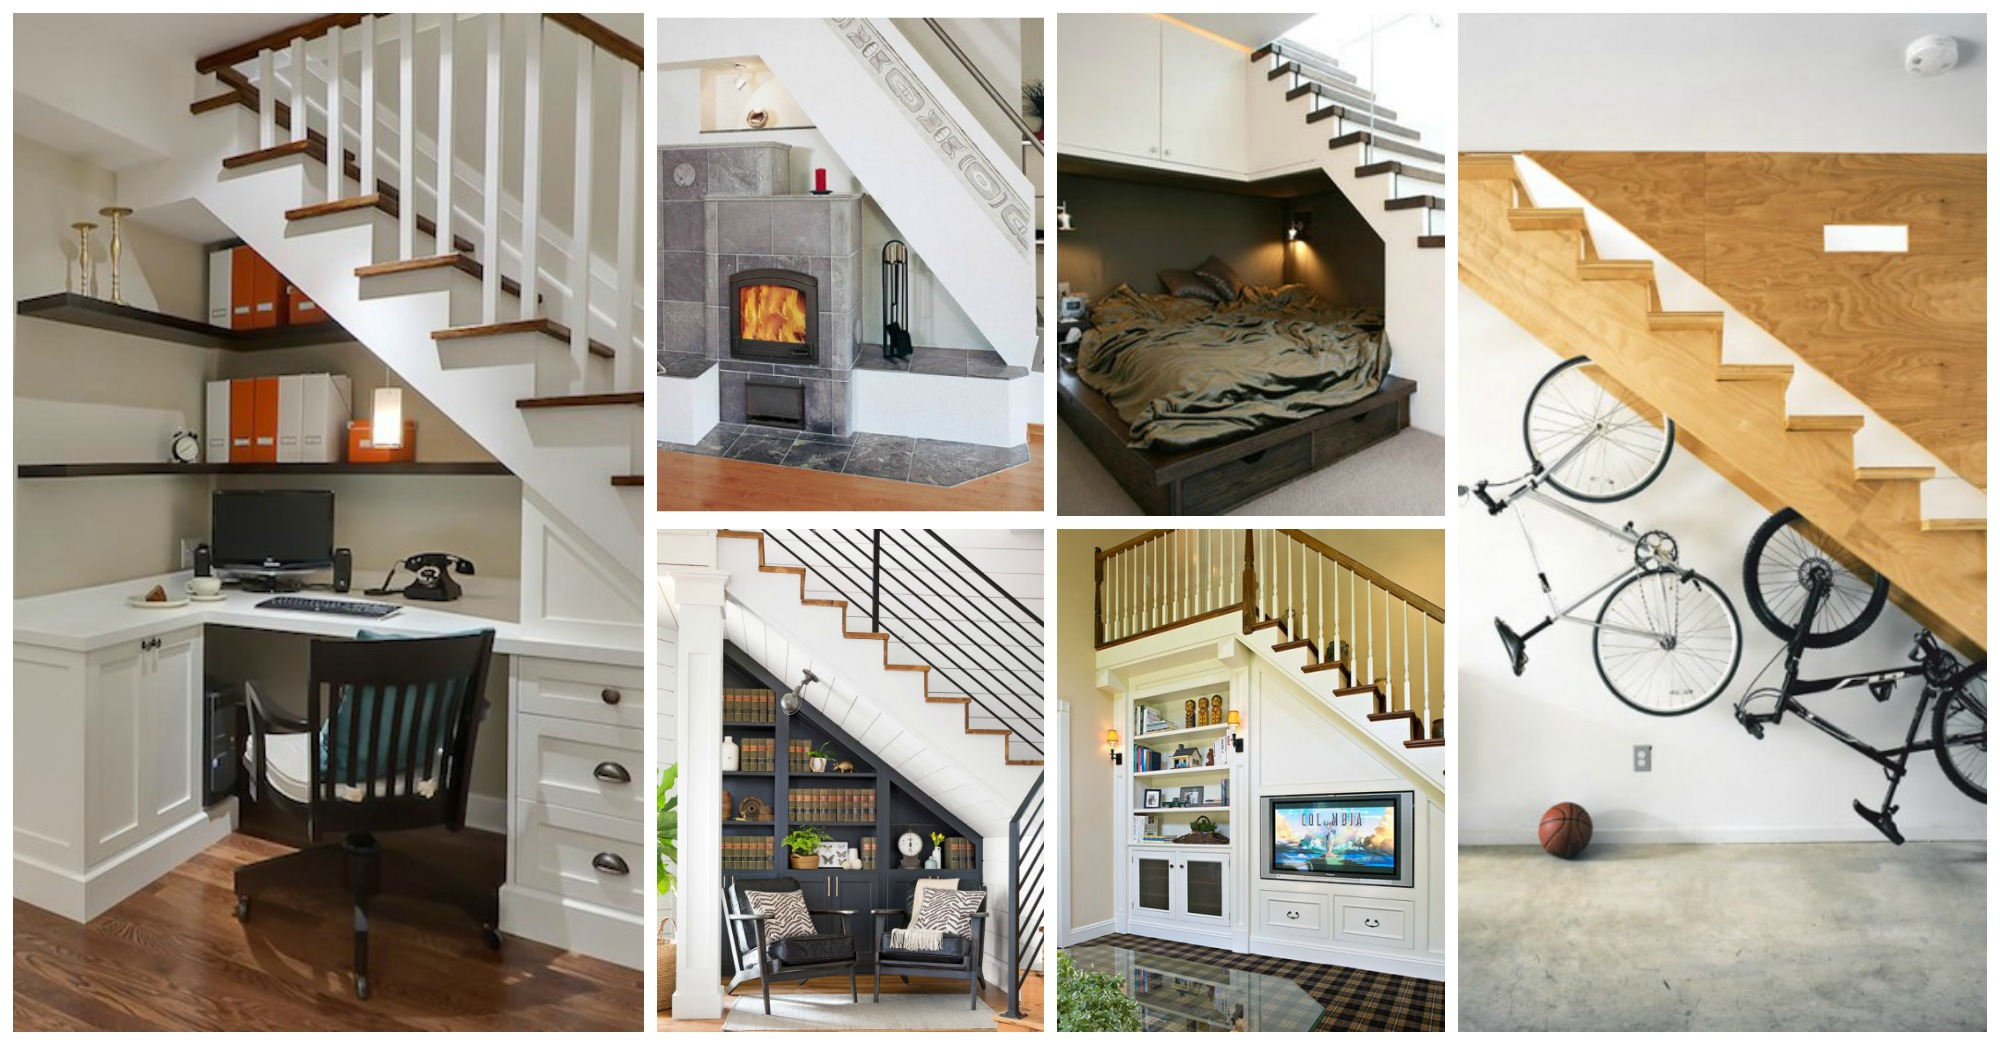 12 Smart Ideas To Use The Space Under The Stairs